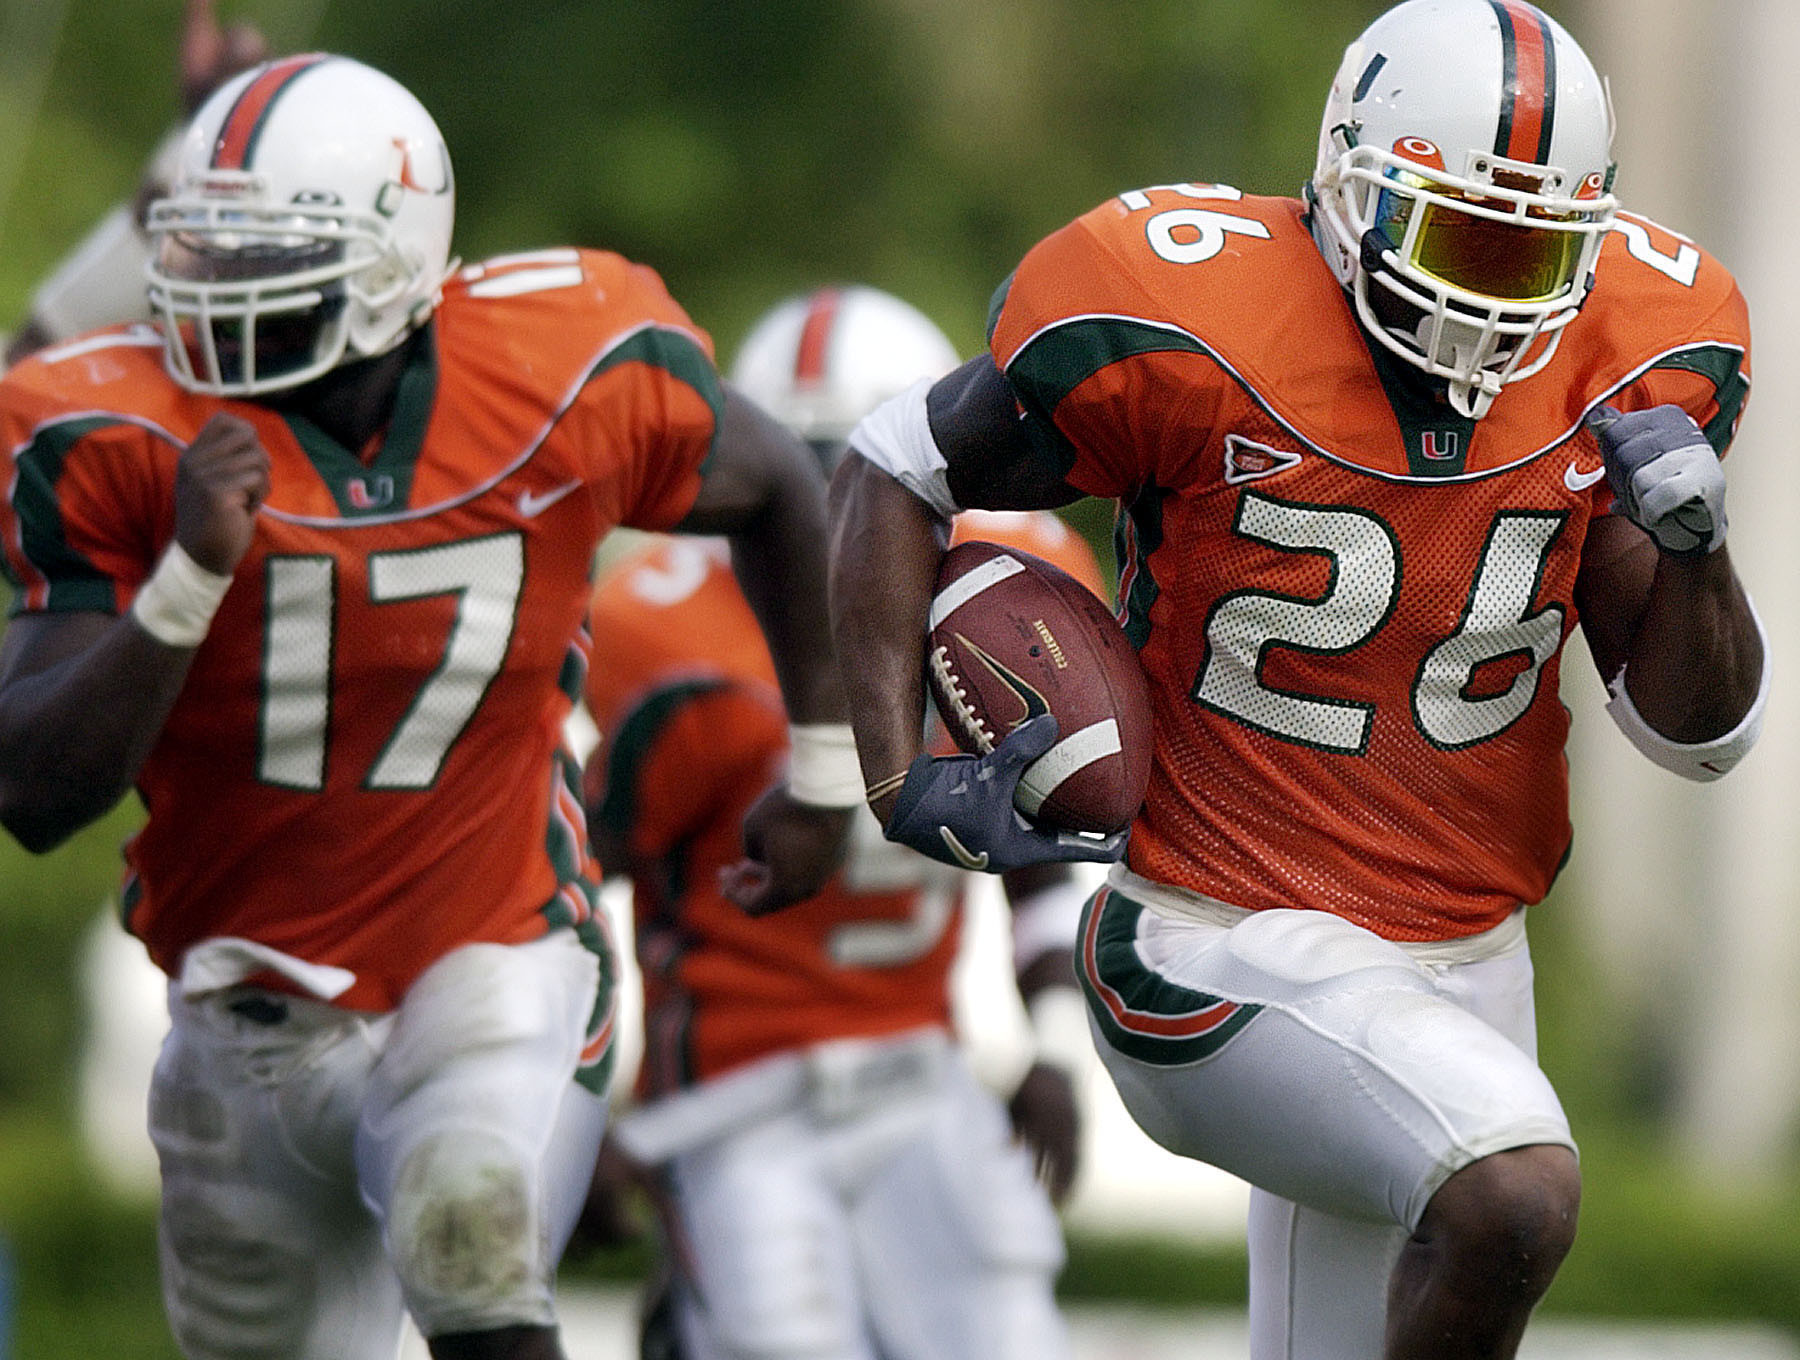 Remembering Sean Taylor in 2018